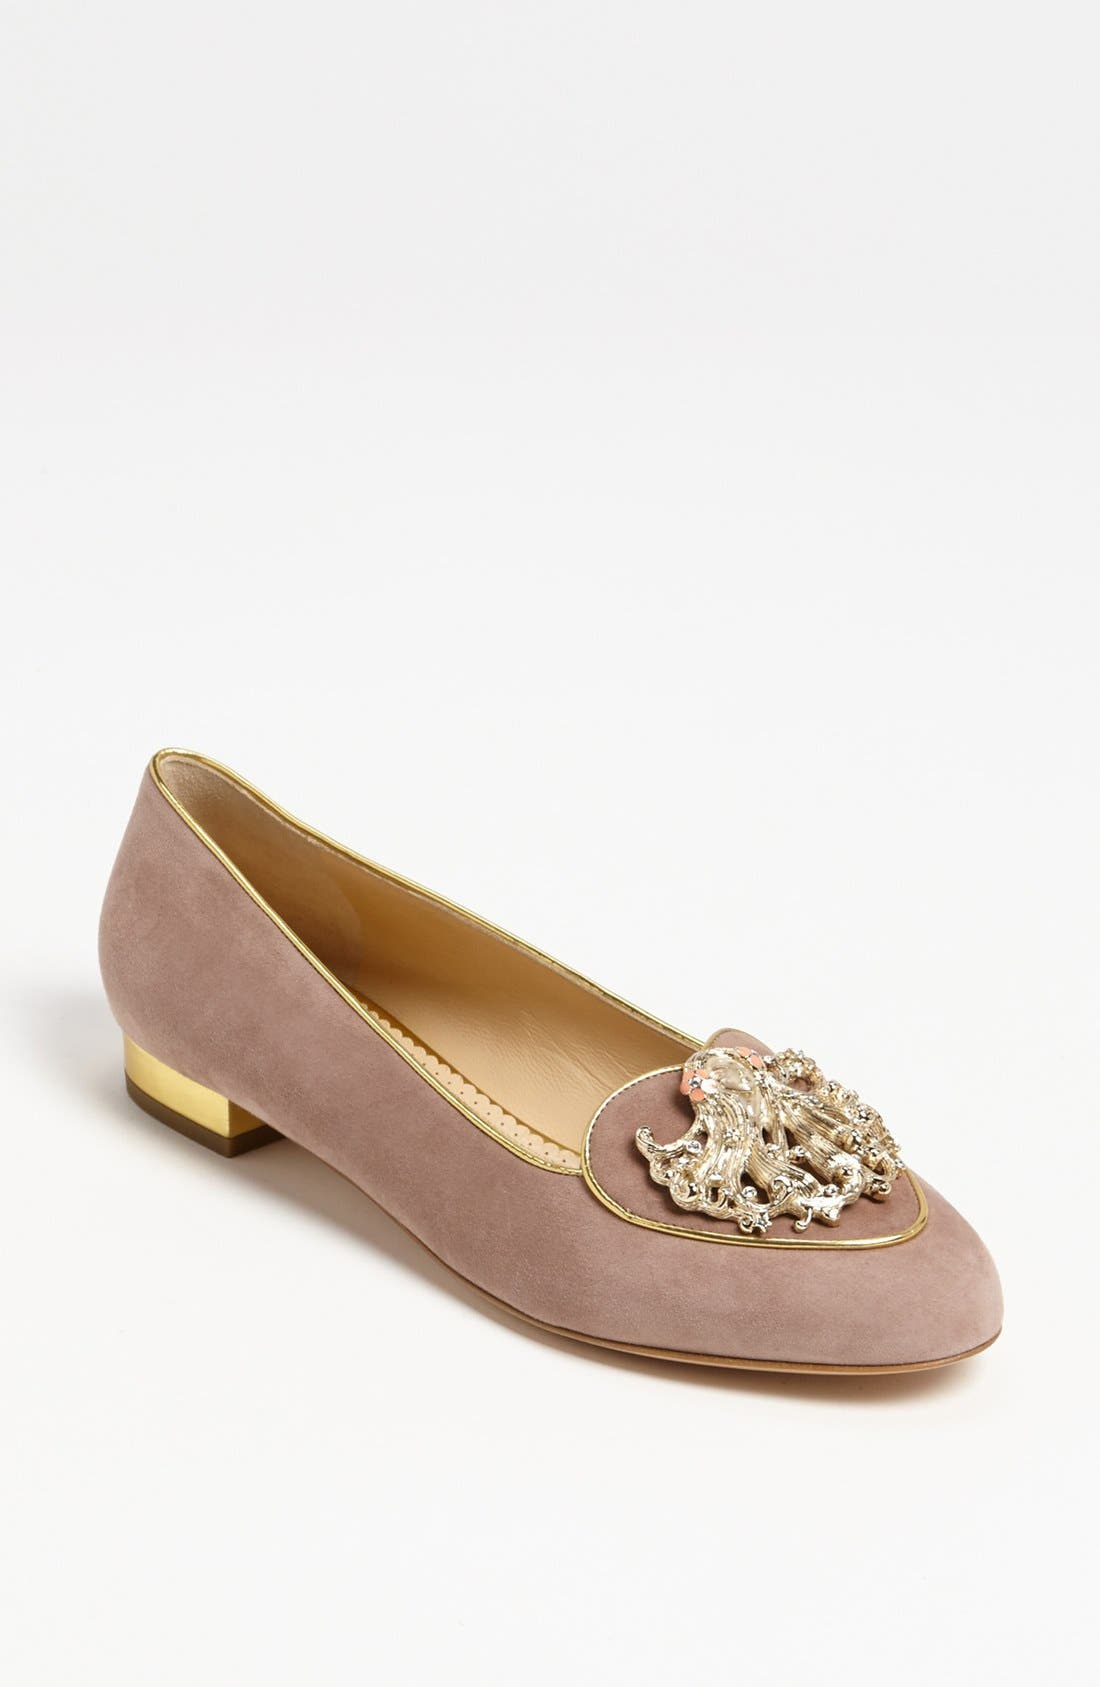 Alternate Image 1 Selected - Charlotte Olympia 'Virgo' Flat